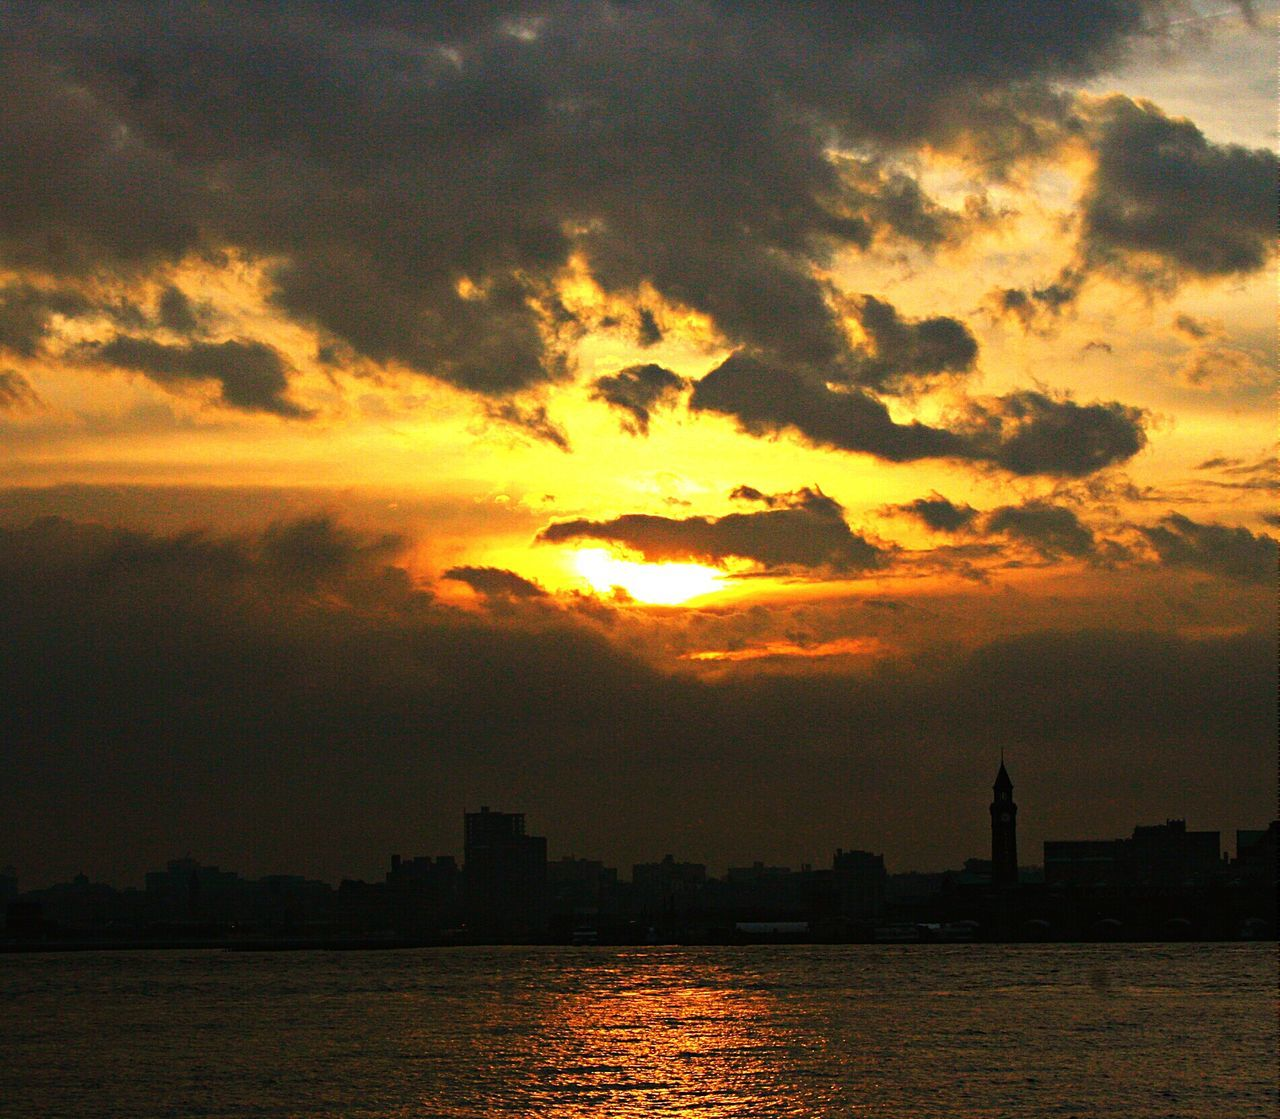 sunset, sky, cloud - sky, building exterior, architecture, city, water, cityscape, silhouette, sun, built structure, waterfront, river, nature, no people, beauty in nature, scenics, skyscraper, outdoors, travel destinations, urban skyline, day